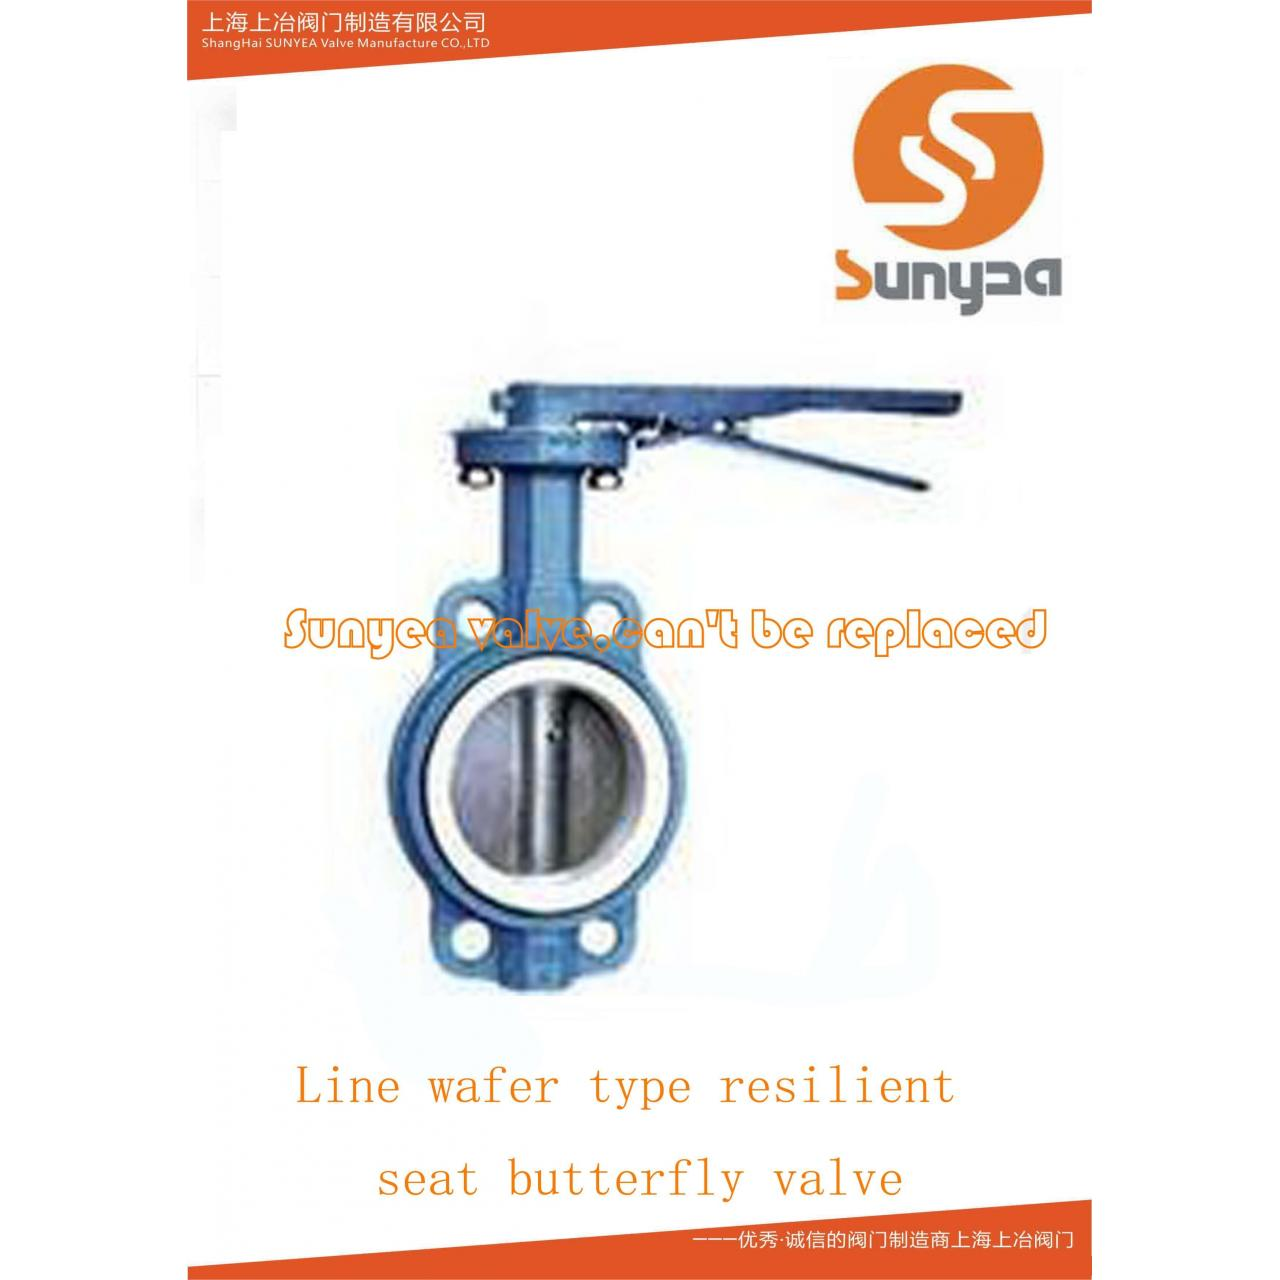 butterfly valve Product Number: 03Line wafer type resilient seat